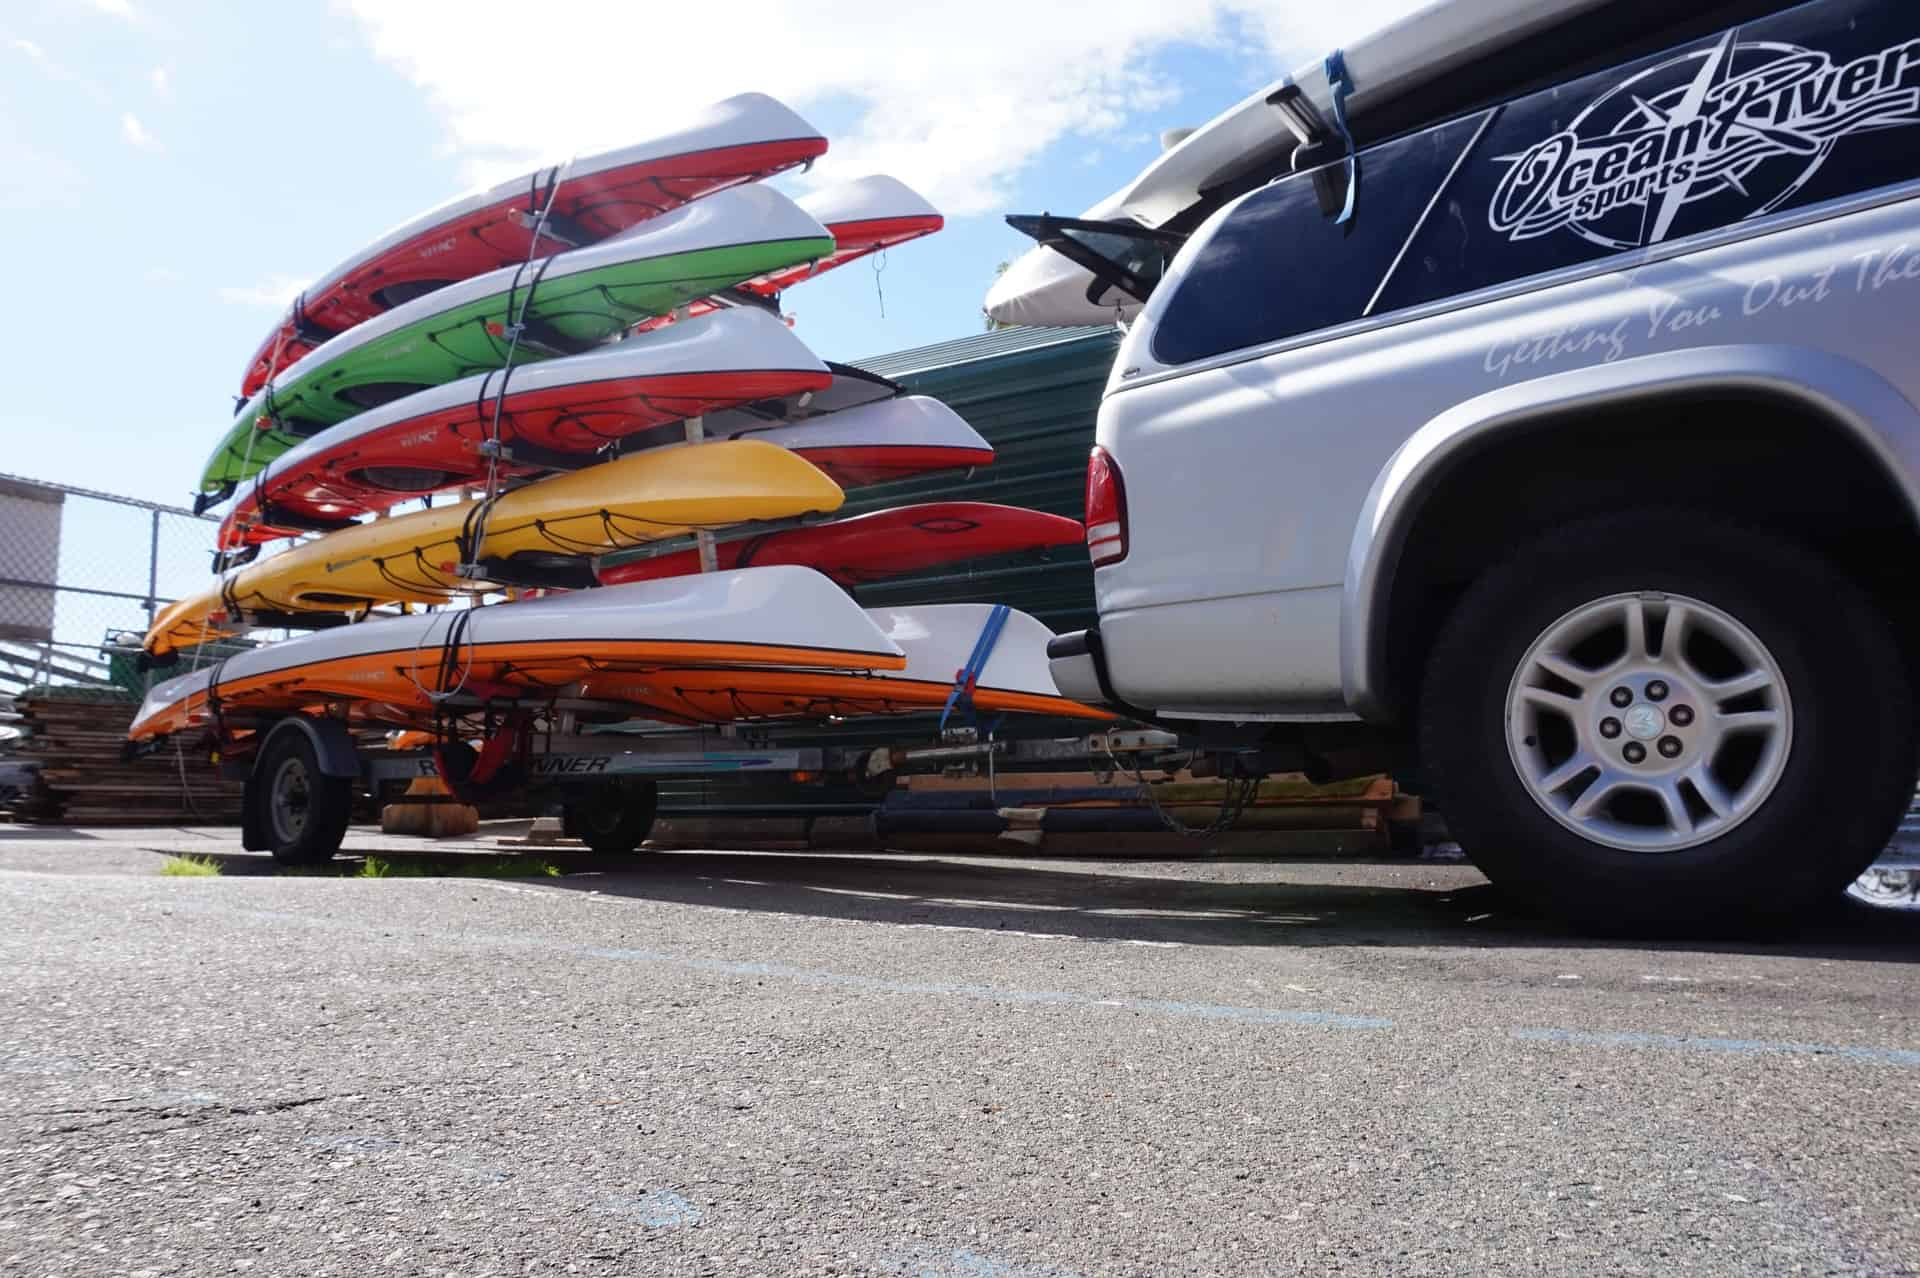 Kayak trailer laden